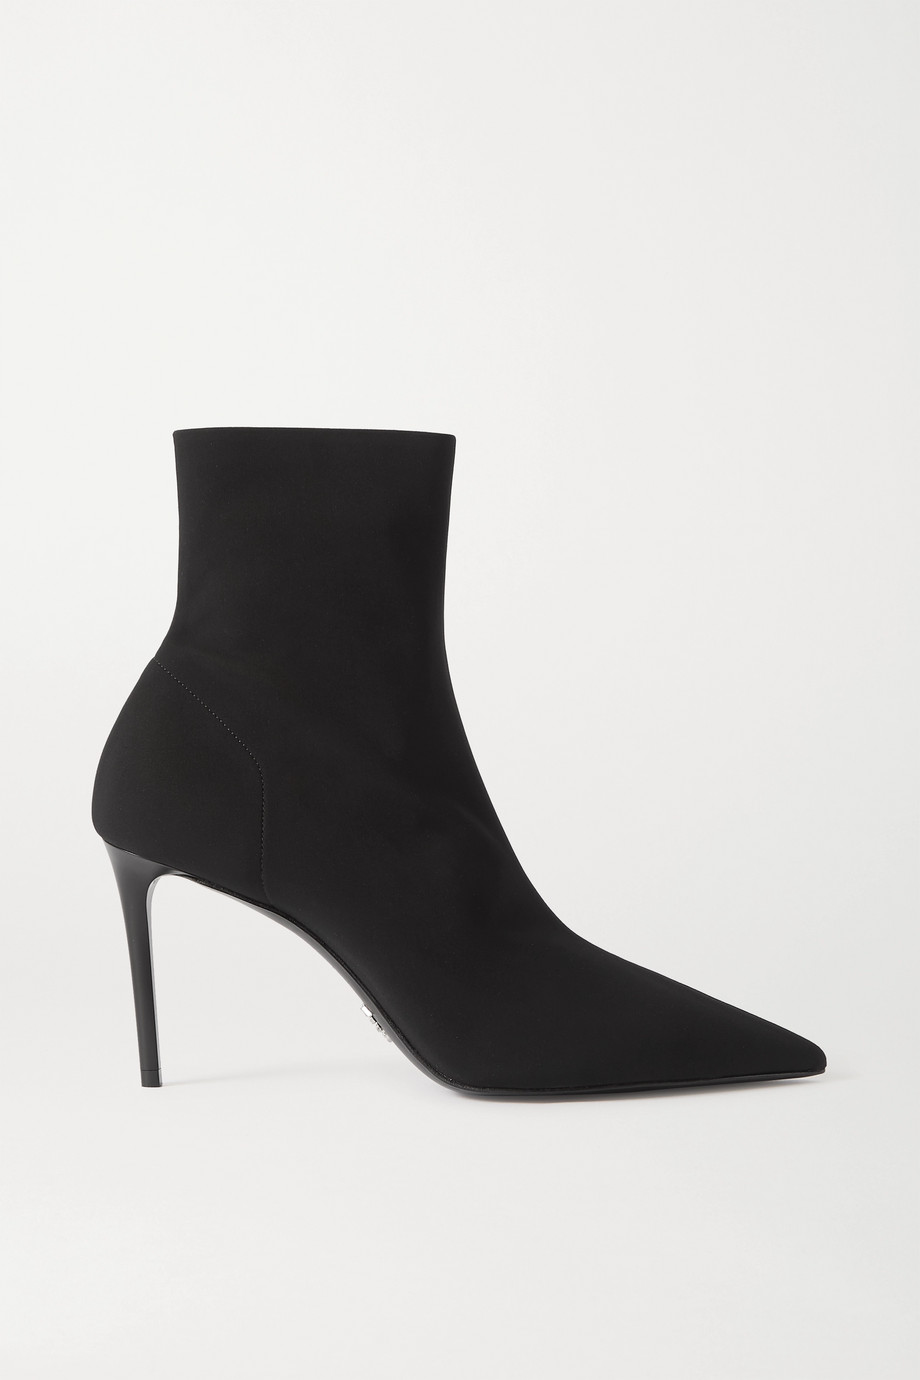 Prada Bottines en mailles stretch